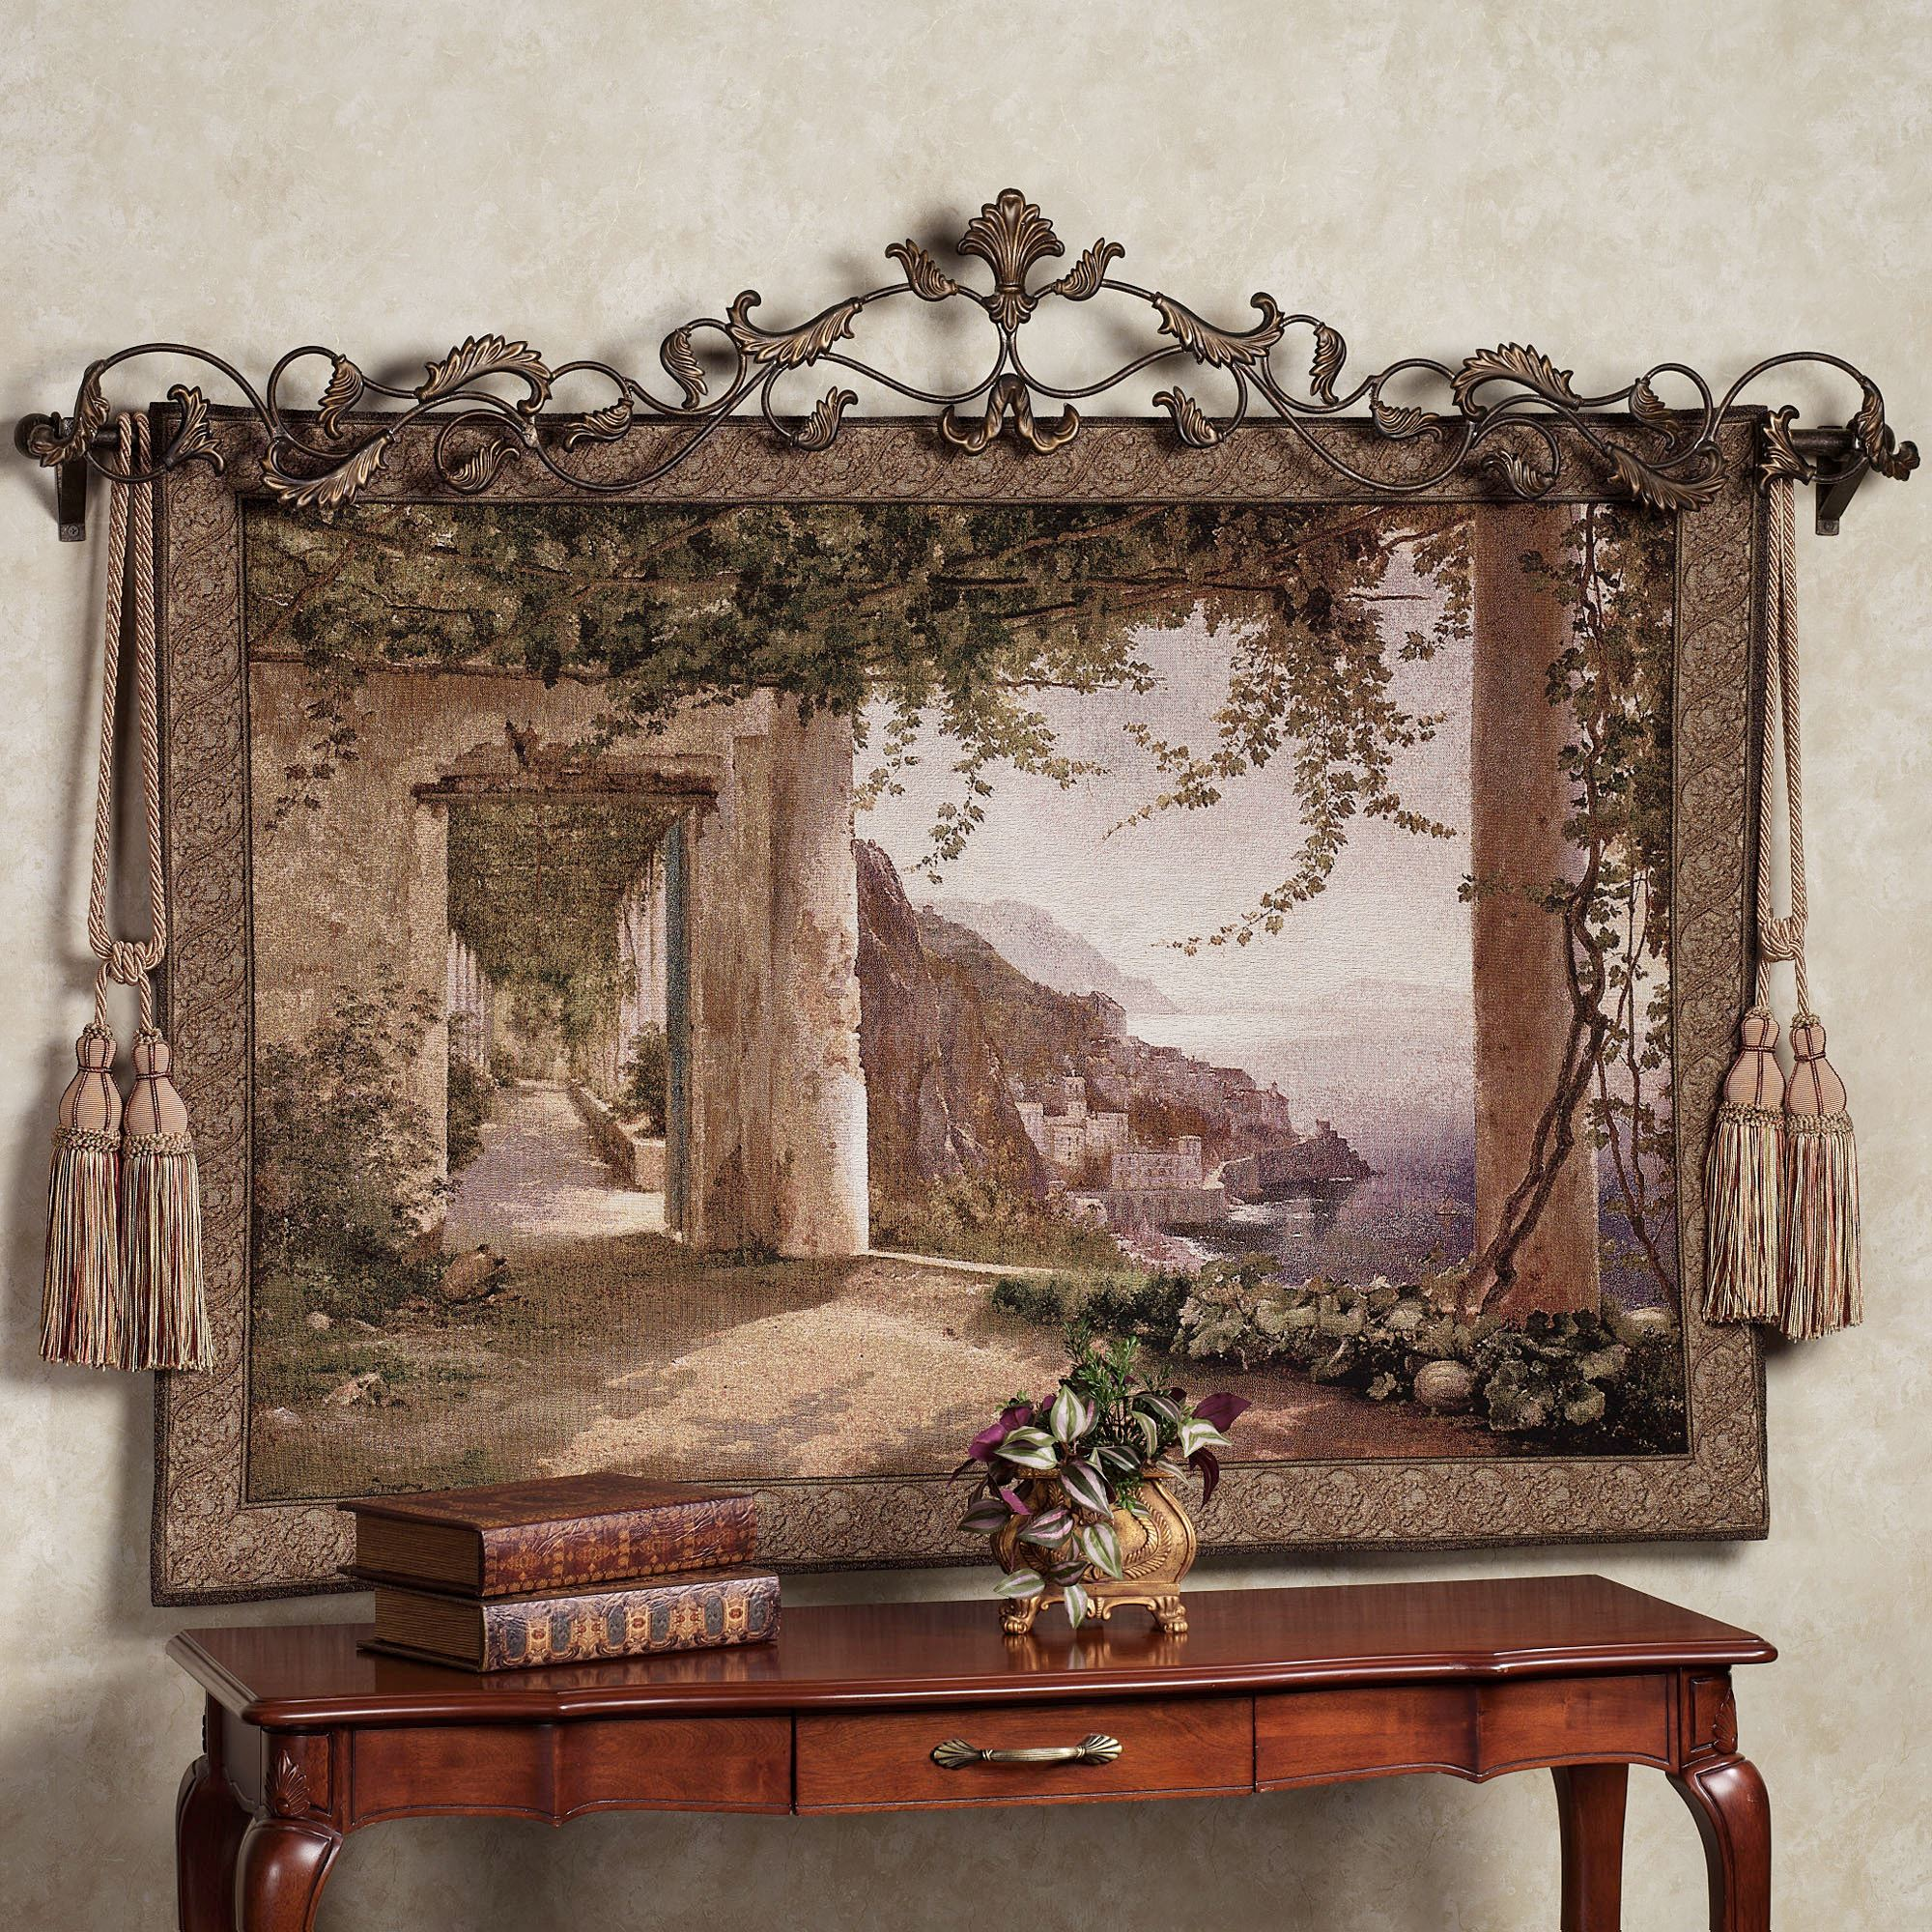 amalfi dai cappuccini wall tapestry. Black Bedroom Furniture Sets. Home Design Ideas